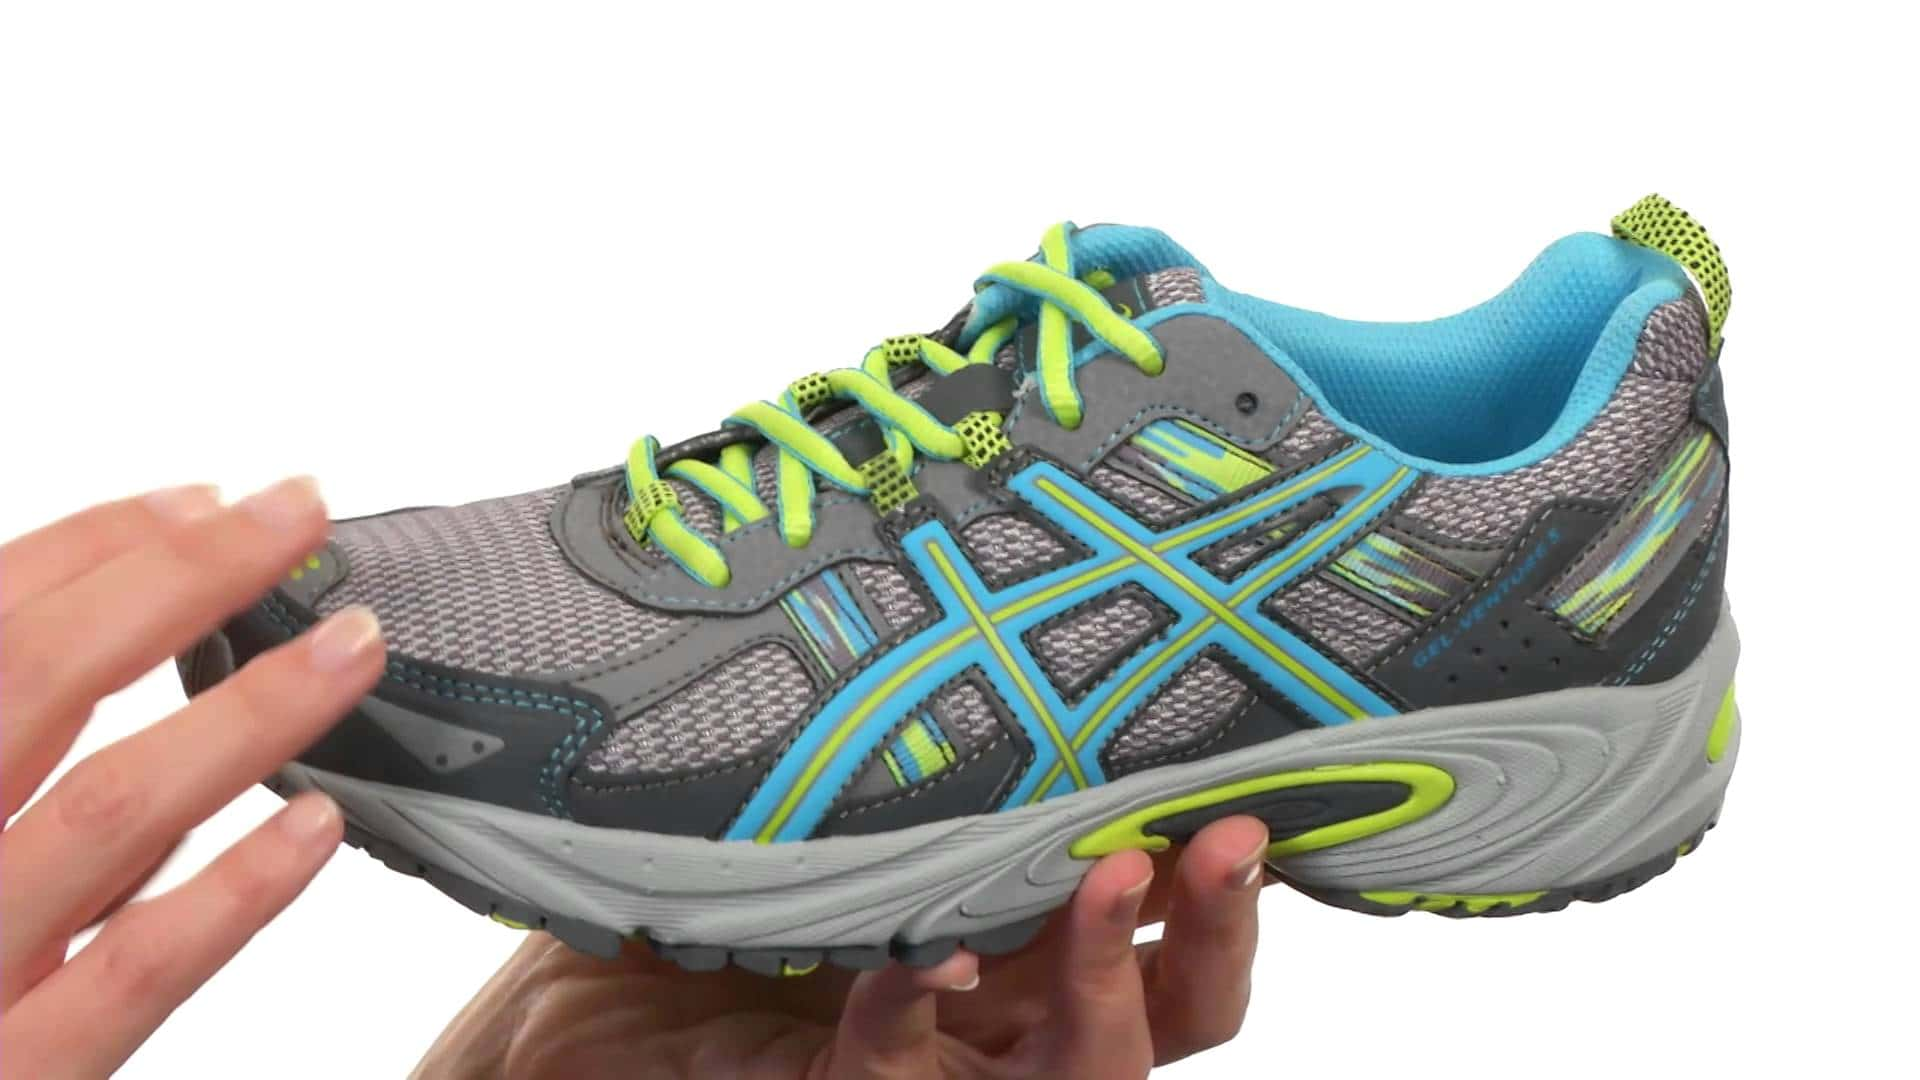 What are the Best Running Shoes for my Flat Feet?